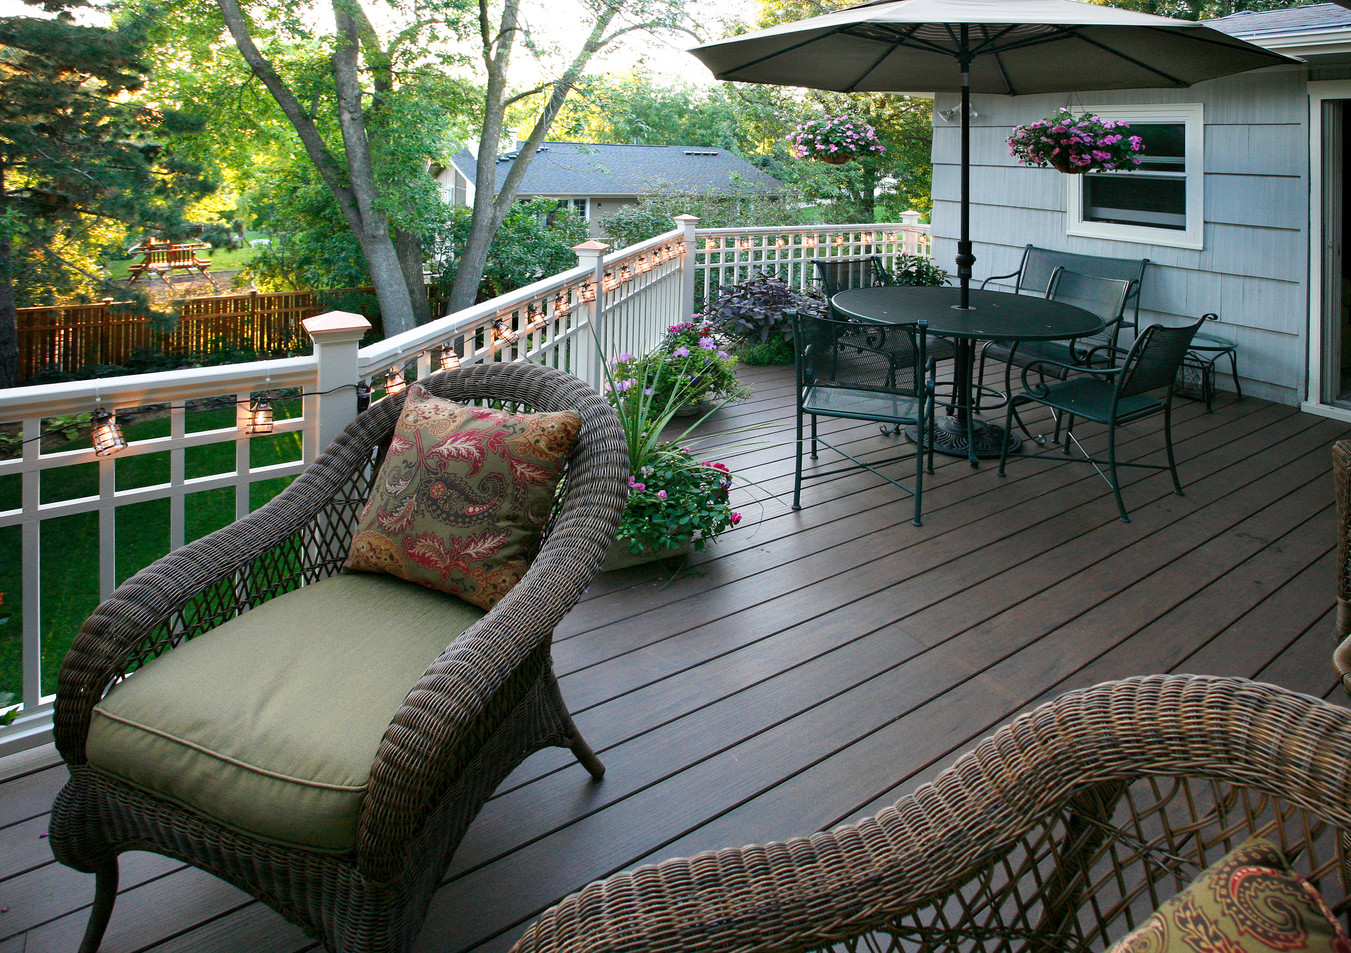 Rc_5510_Deck with Chaise.jpg